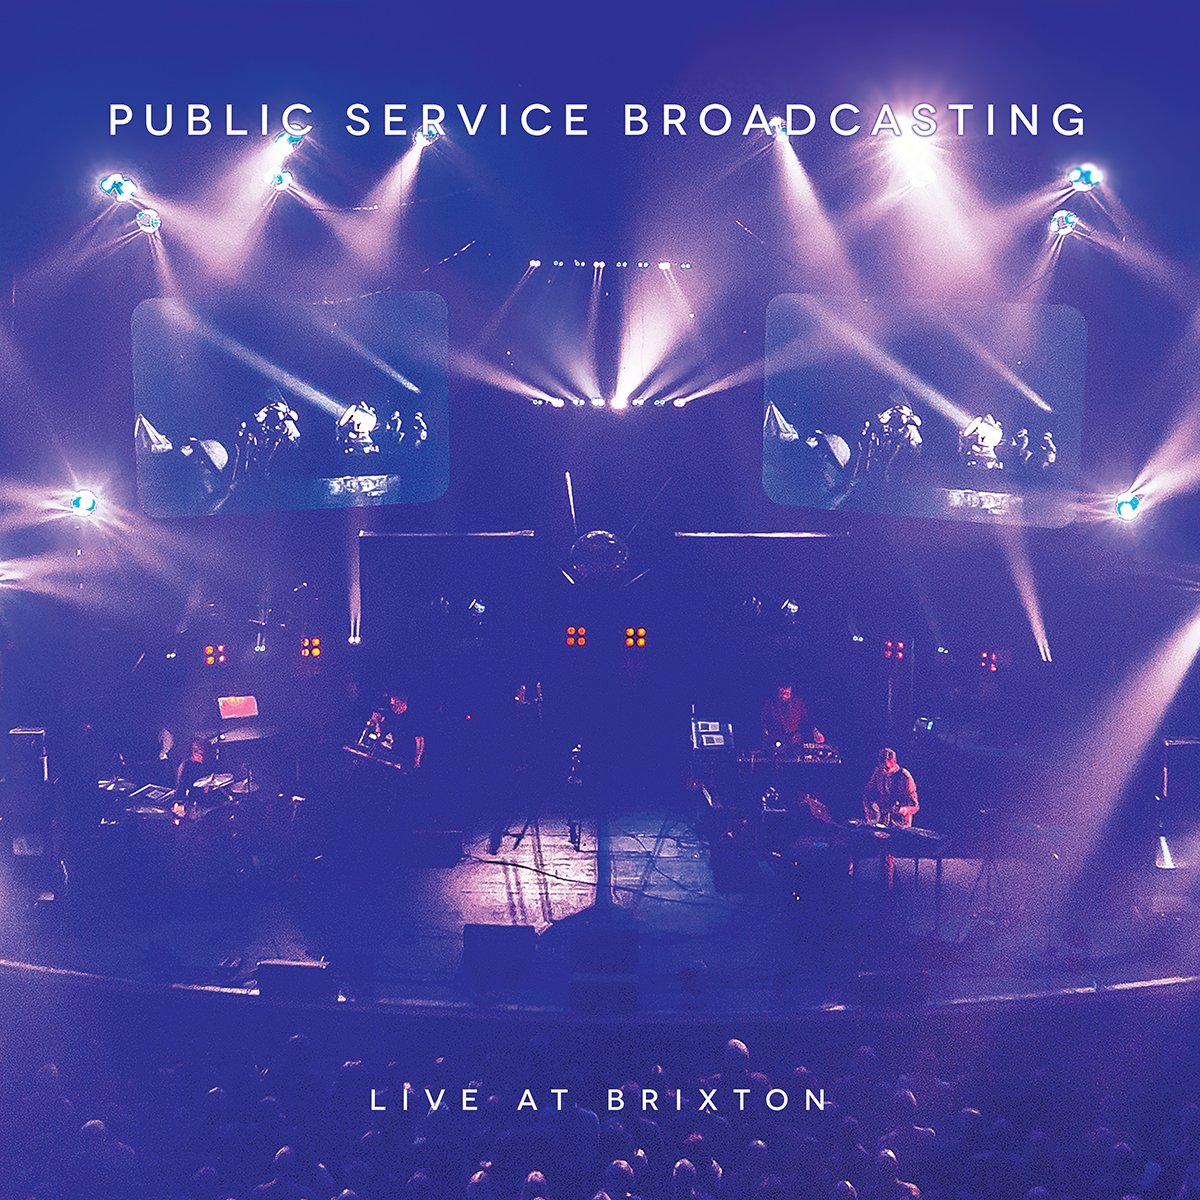 PSB Live At Brixton [2xCD + DVD + Go! Tee Bundle]